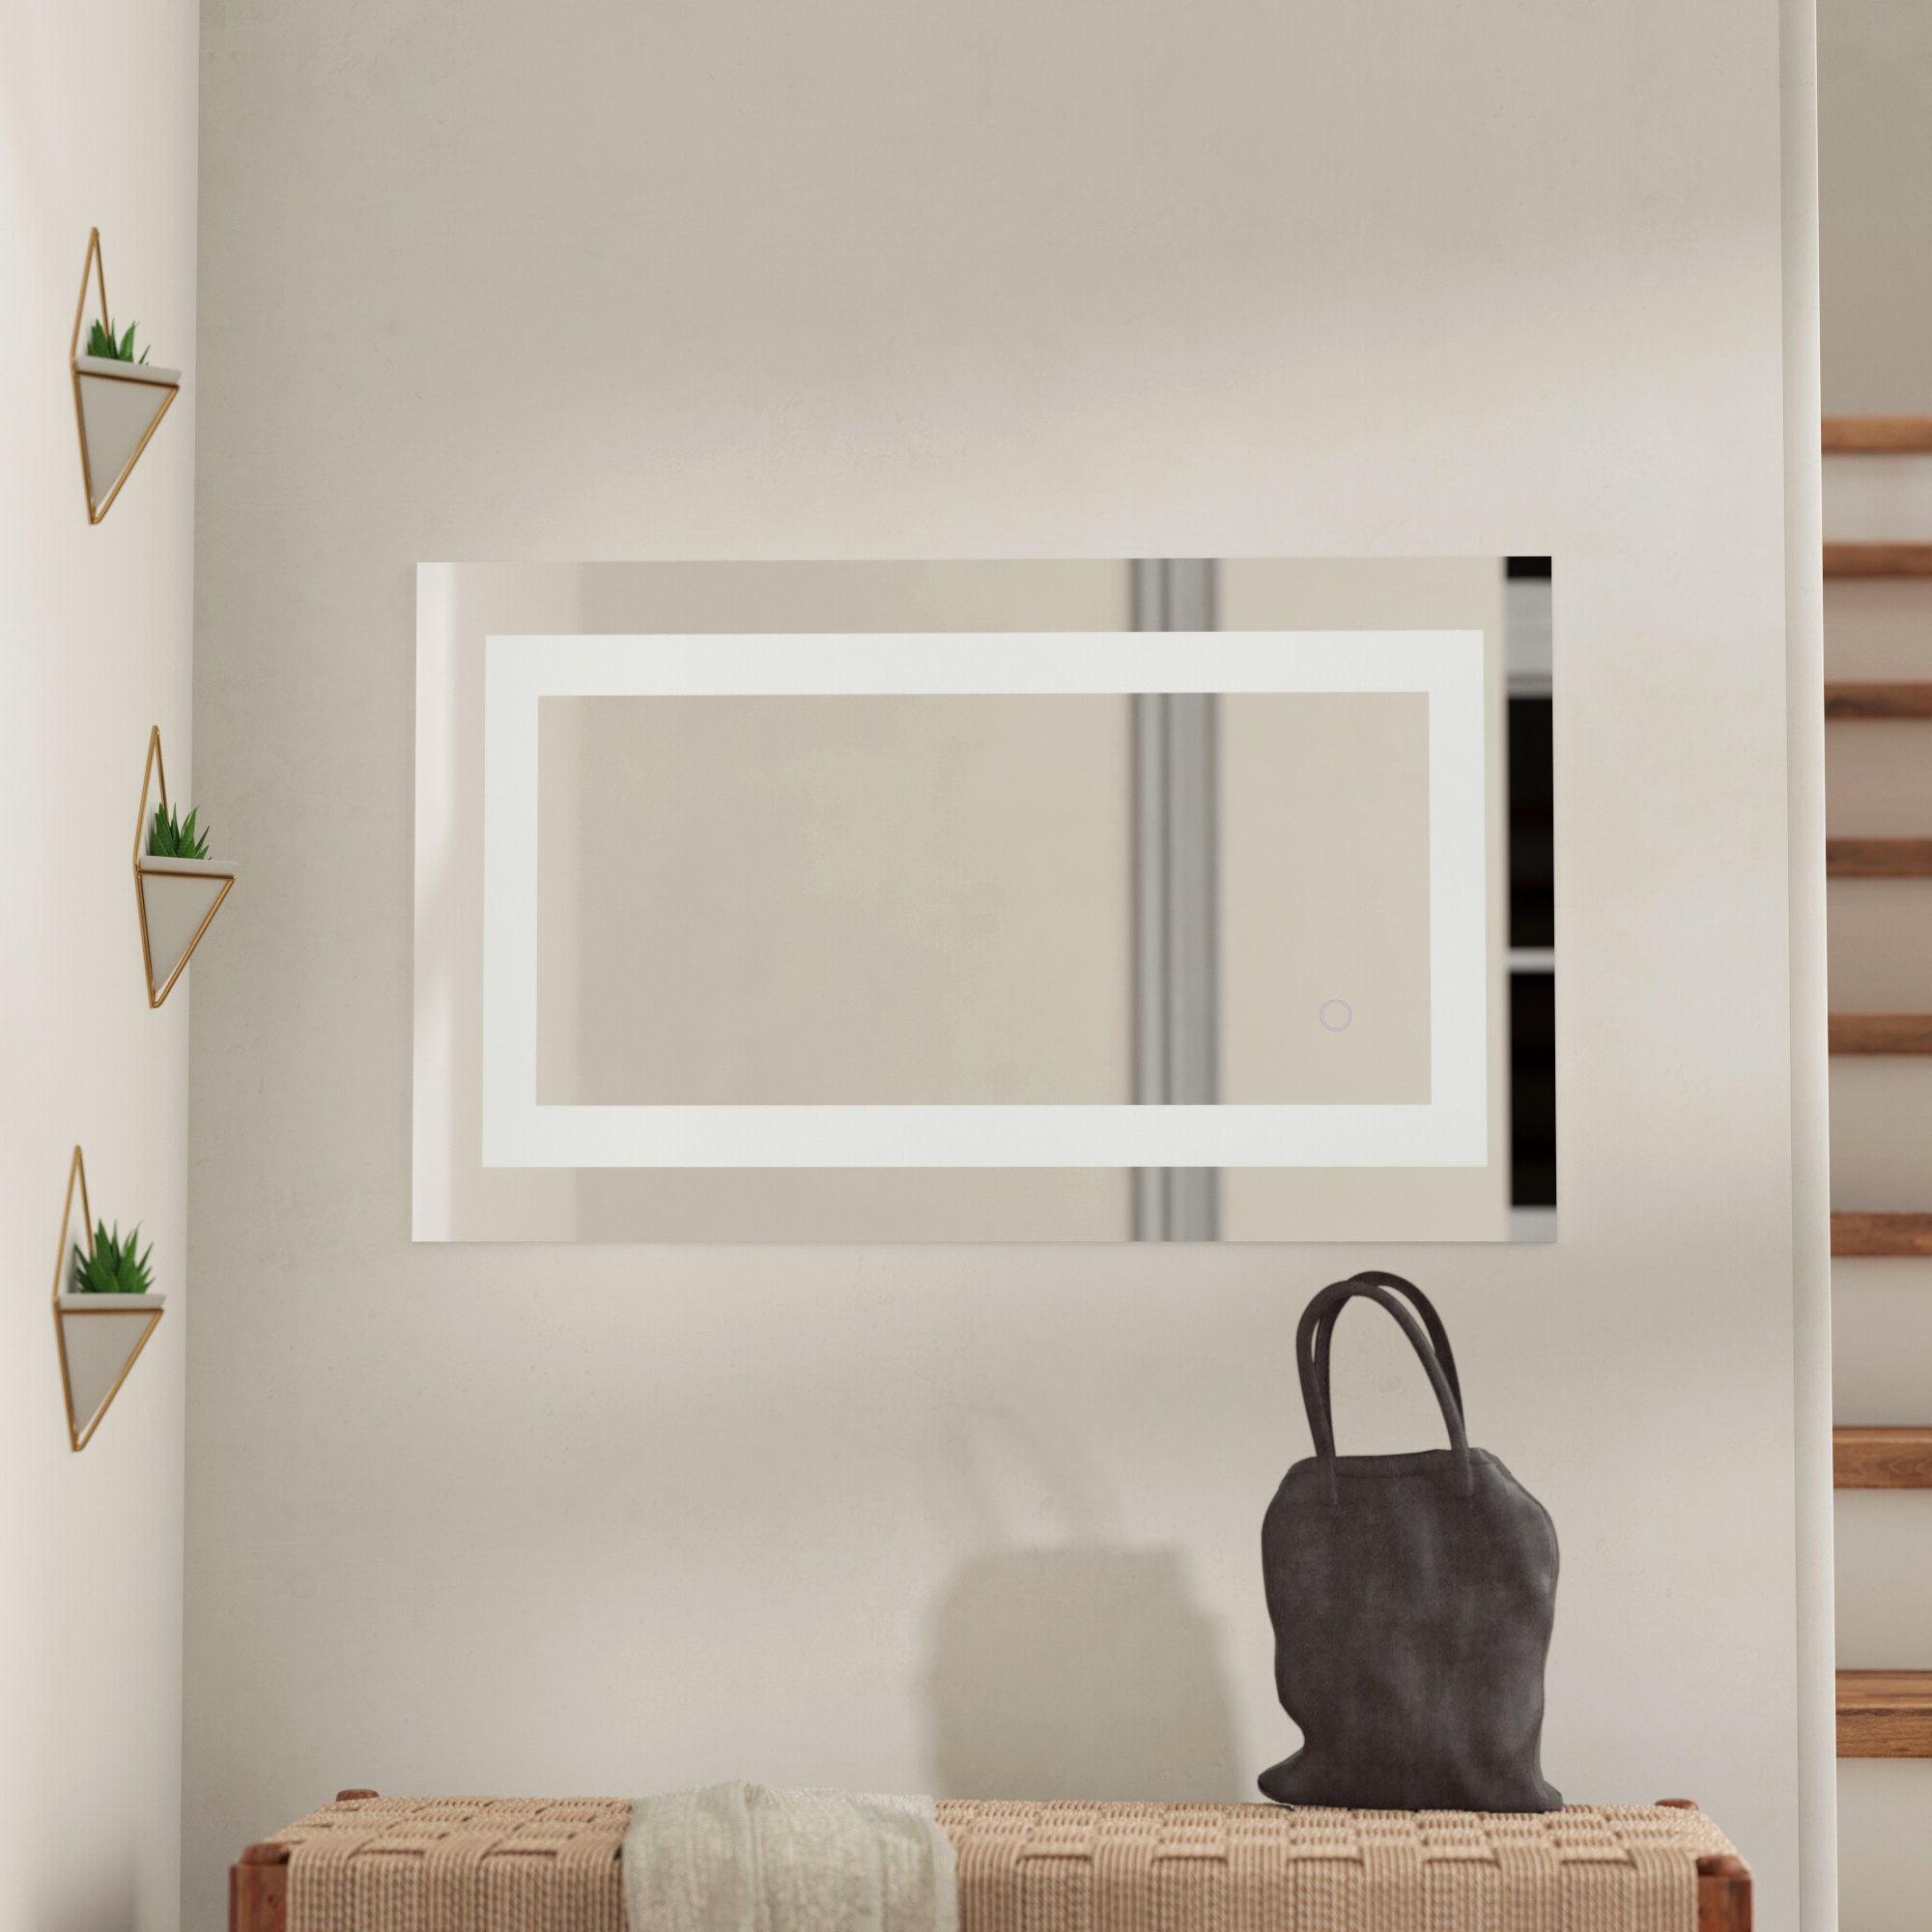 Tulloch Hardwired Led Lighted Bathroom Mirror With Well Known Lighted Wall Mirrors For Bathrooms (View 19 of 20)